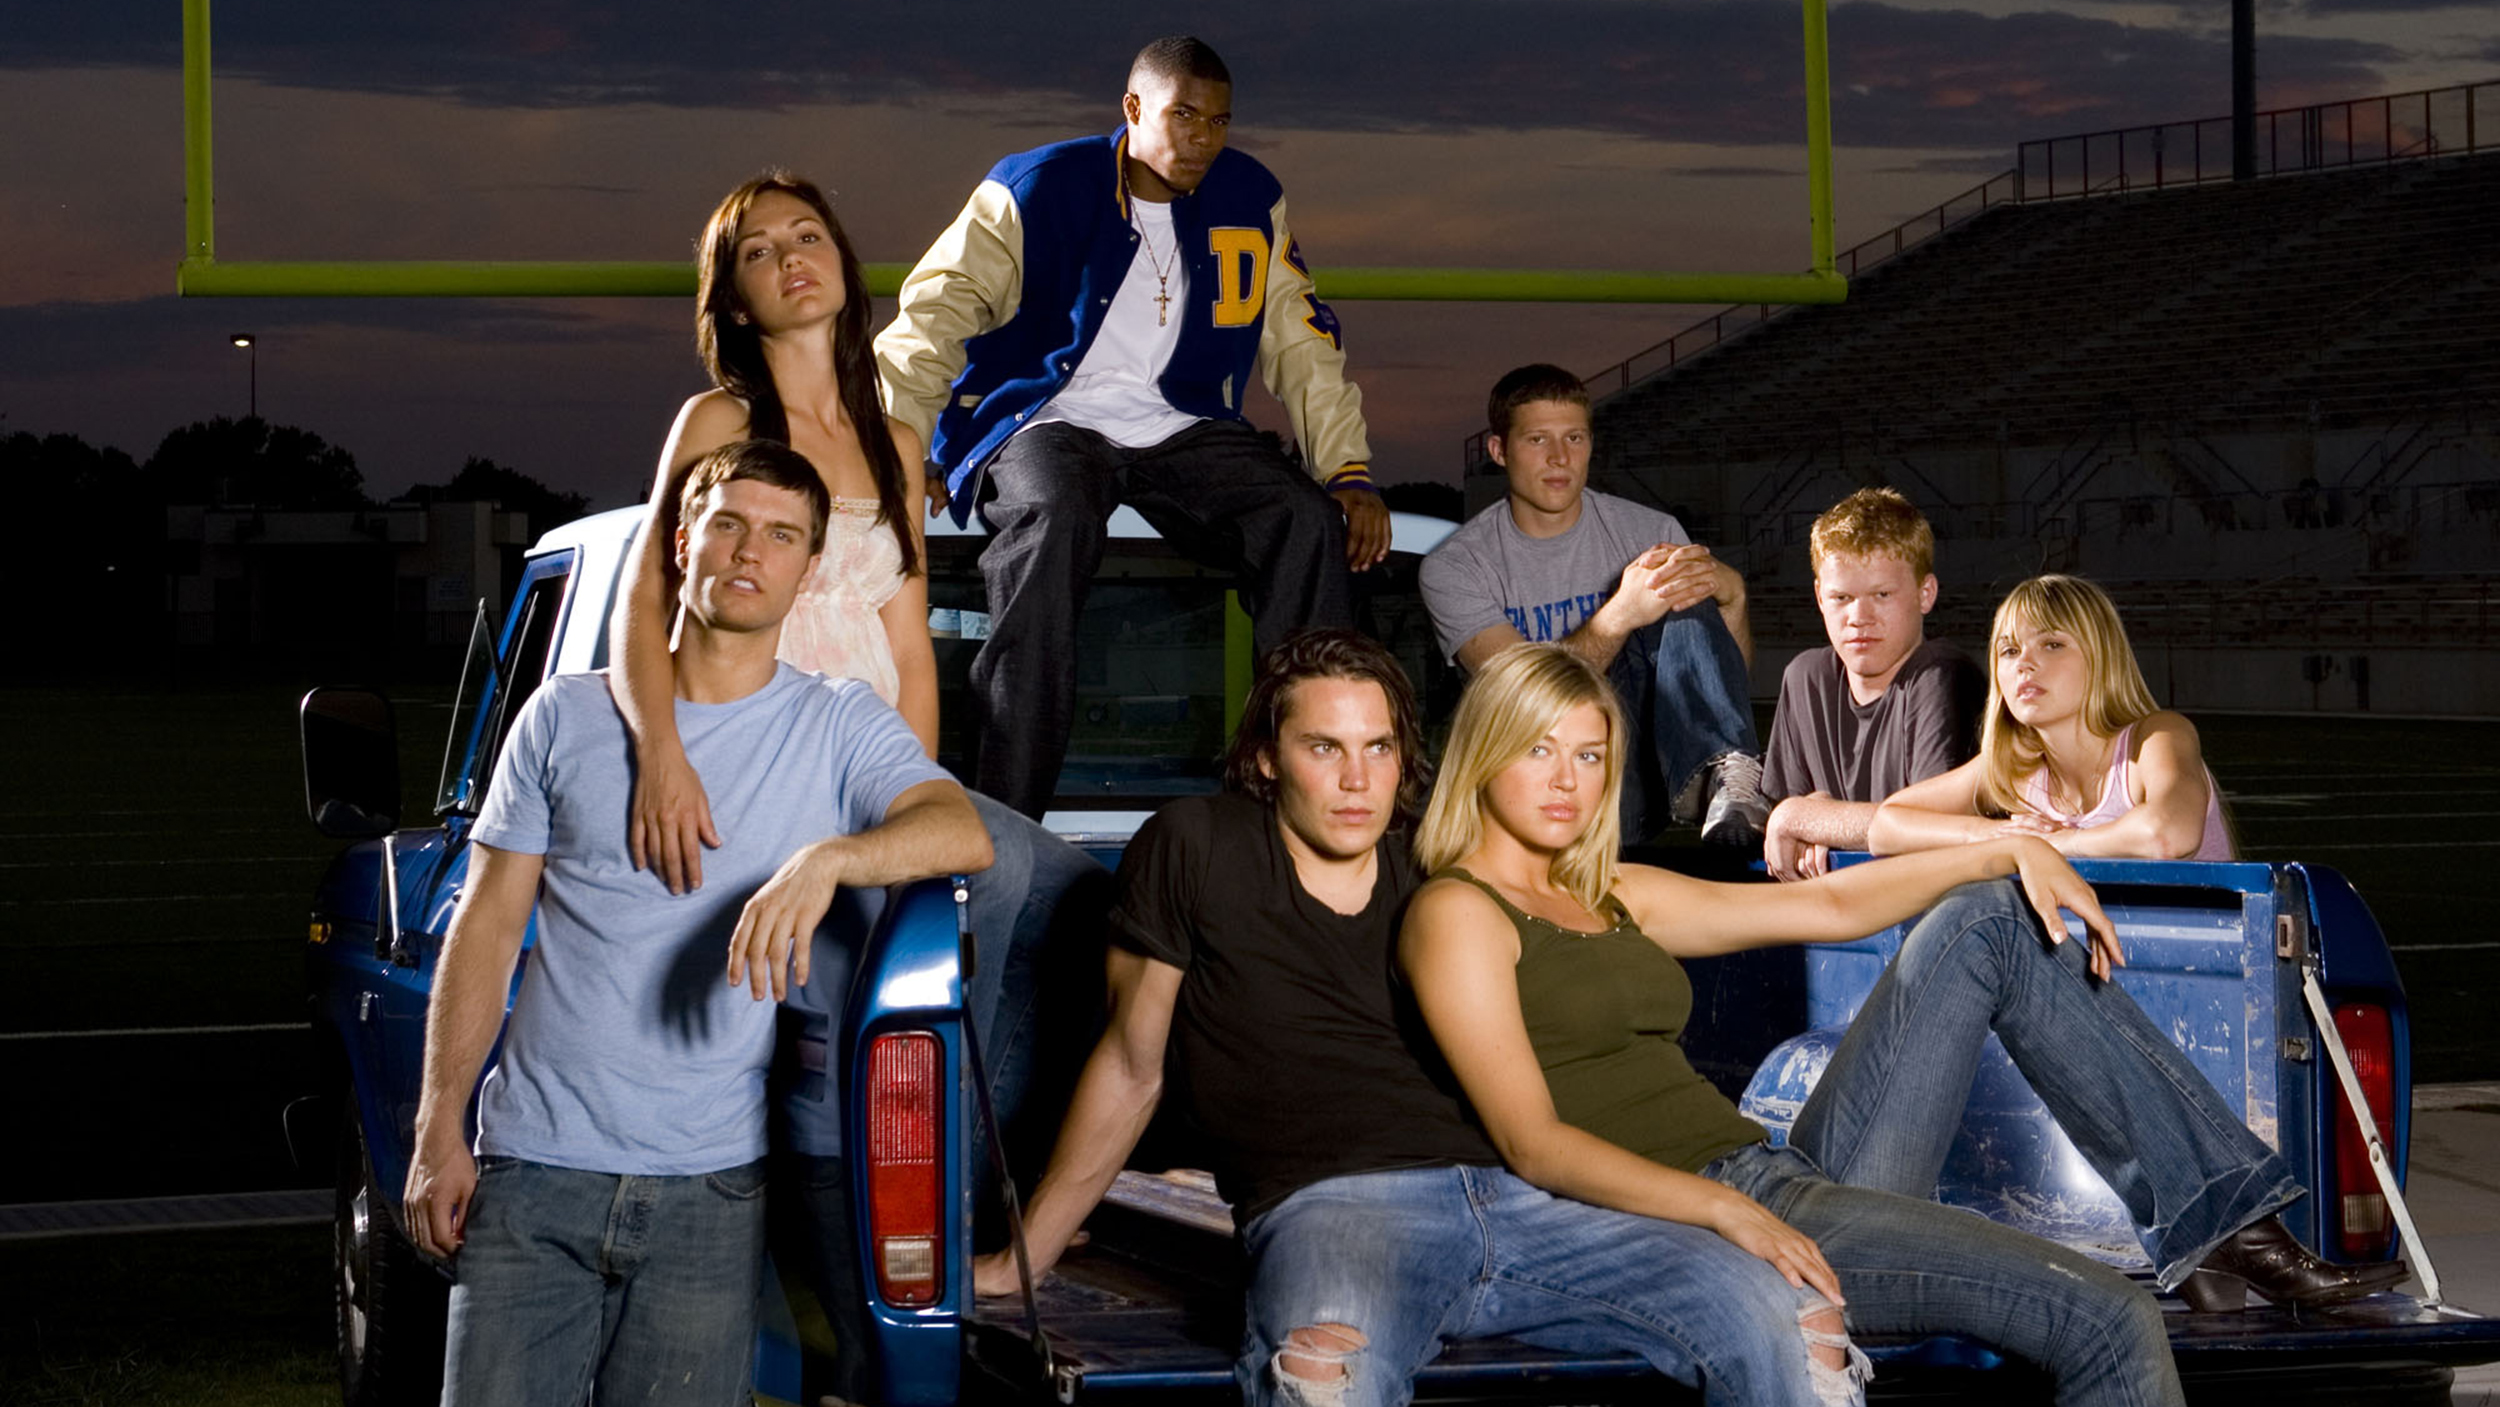 friday night lights cast members reunite 10 years after